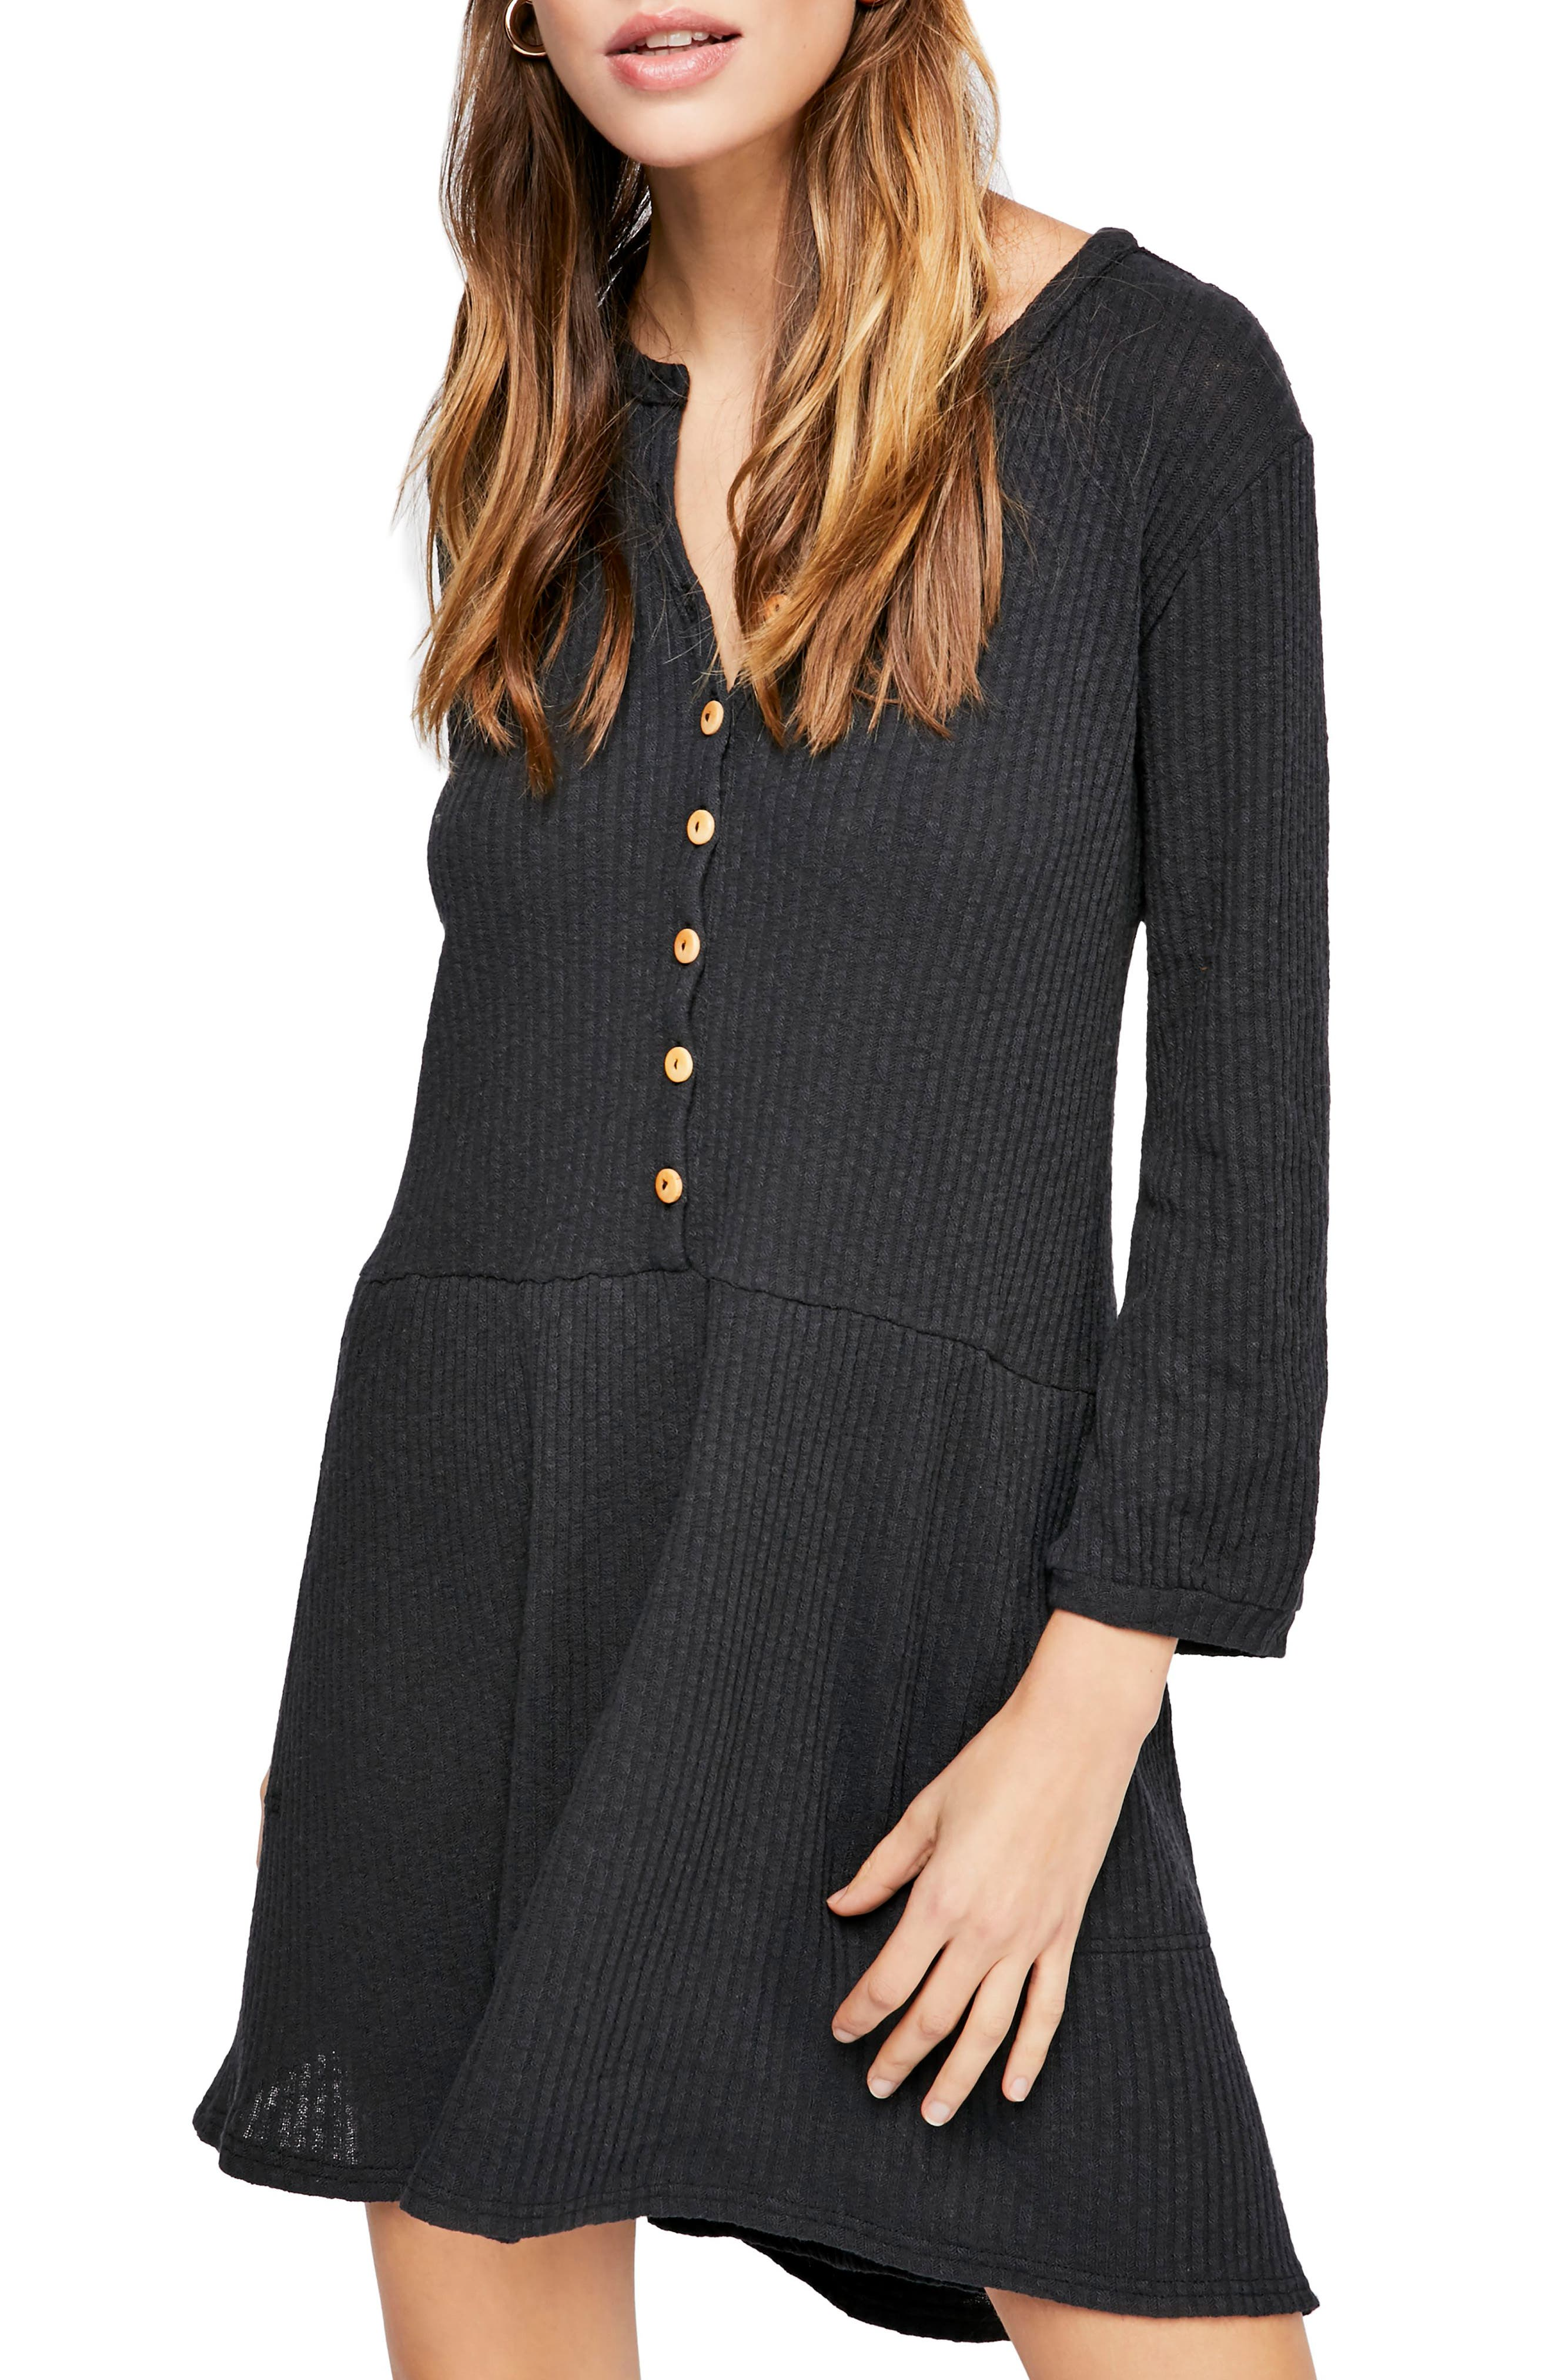 FREE PEOPLE, Endless Summer by Free People Blossom Stretch Cotton Dress, Main thumbnail 1, color, BLACK